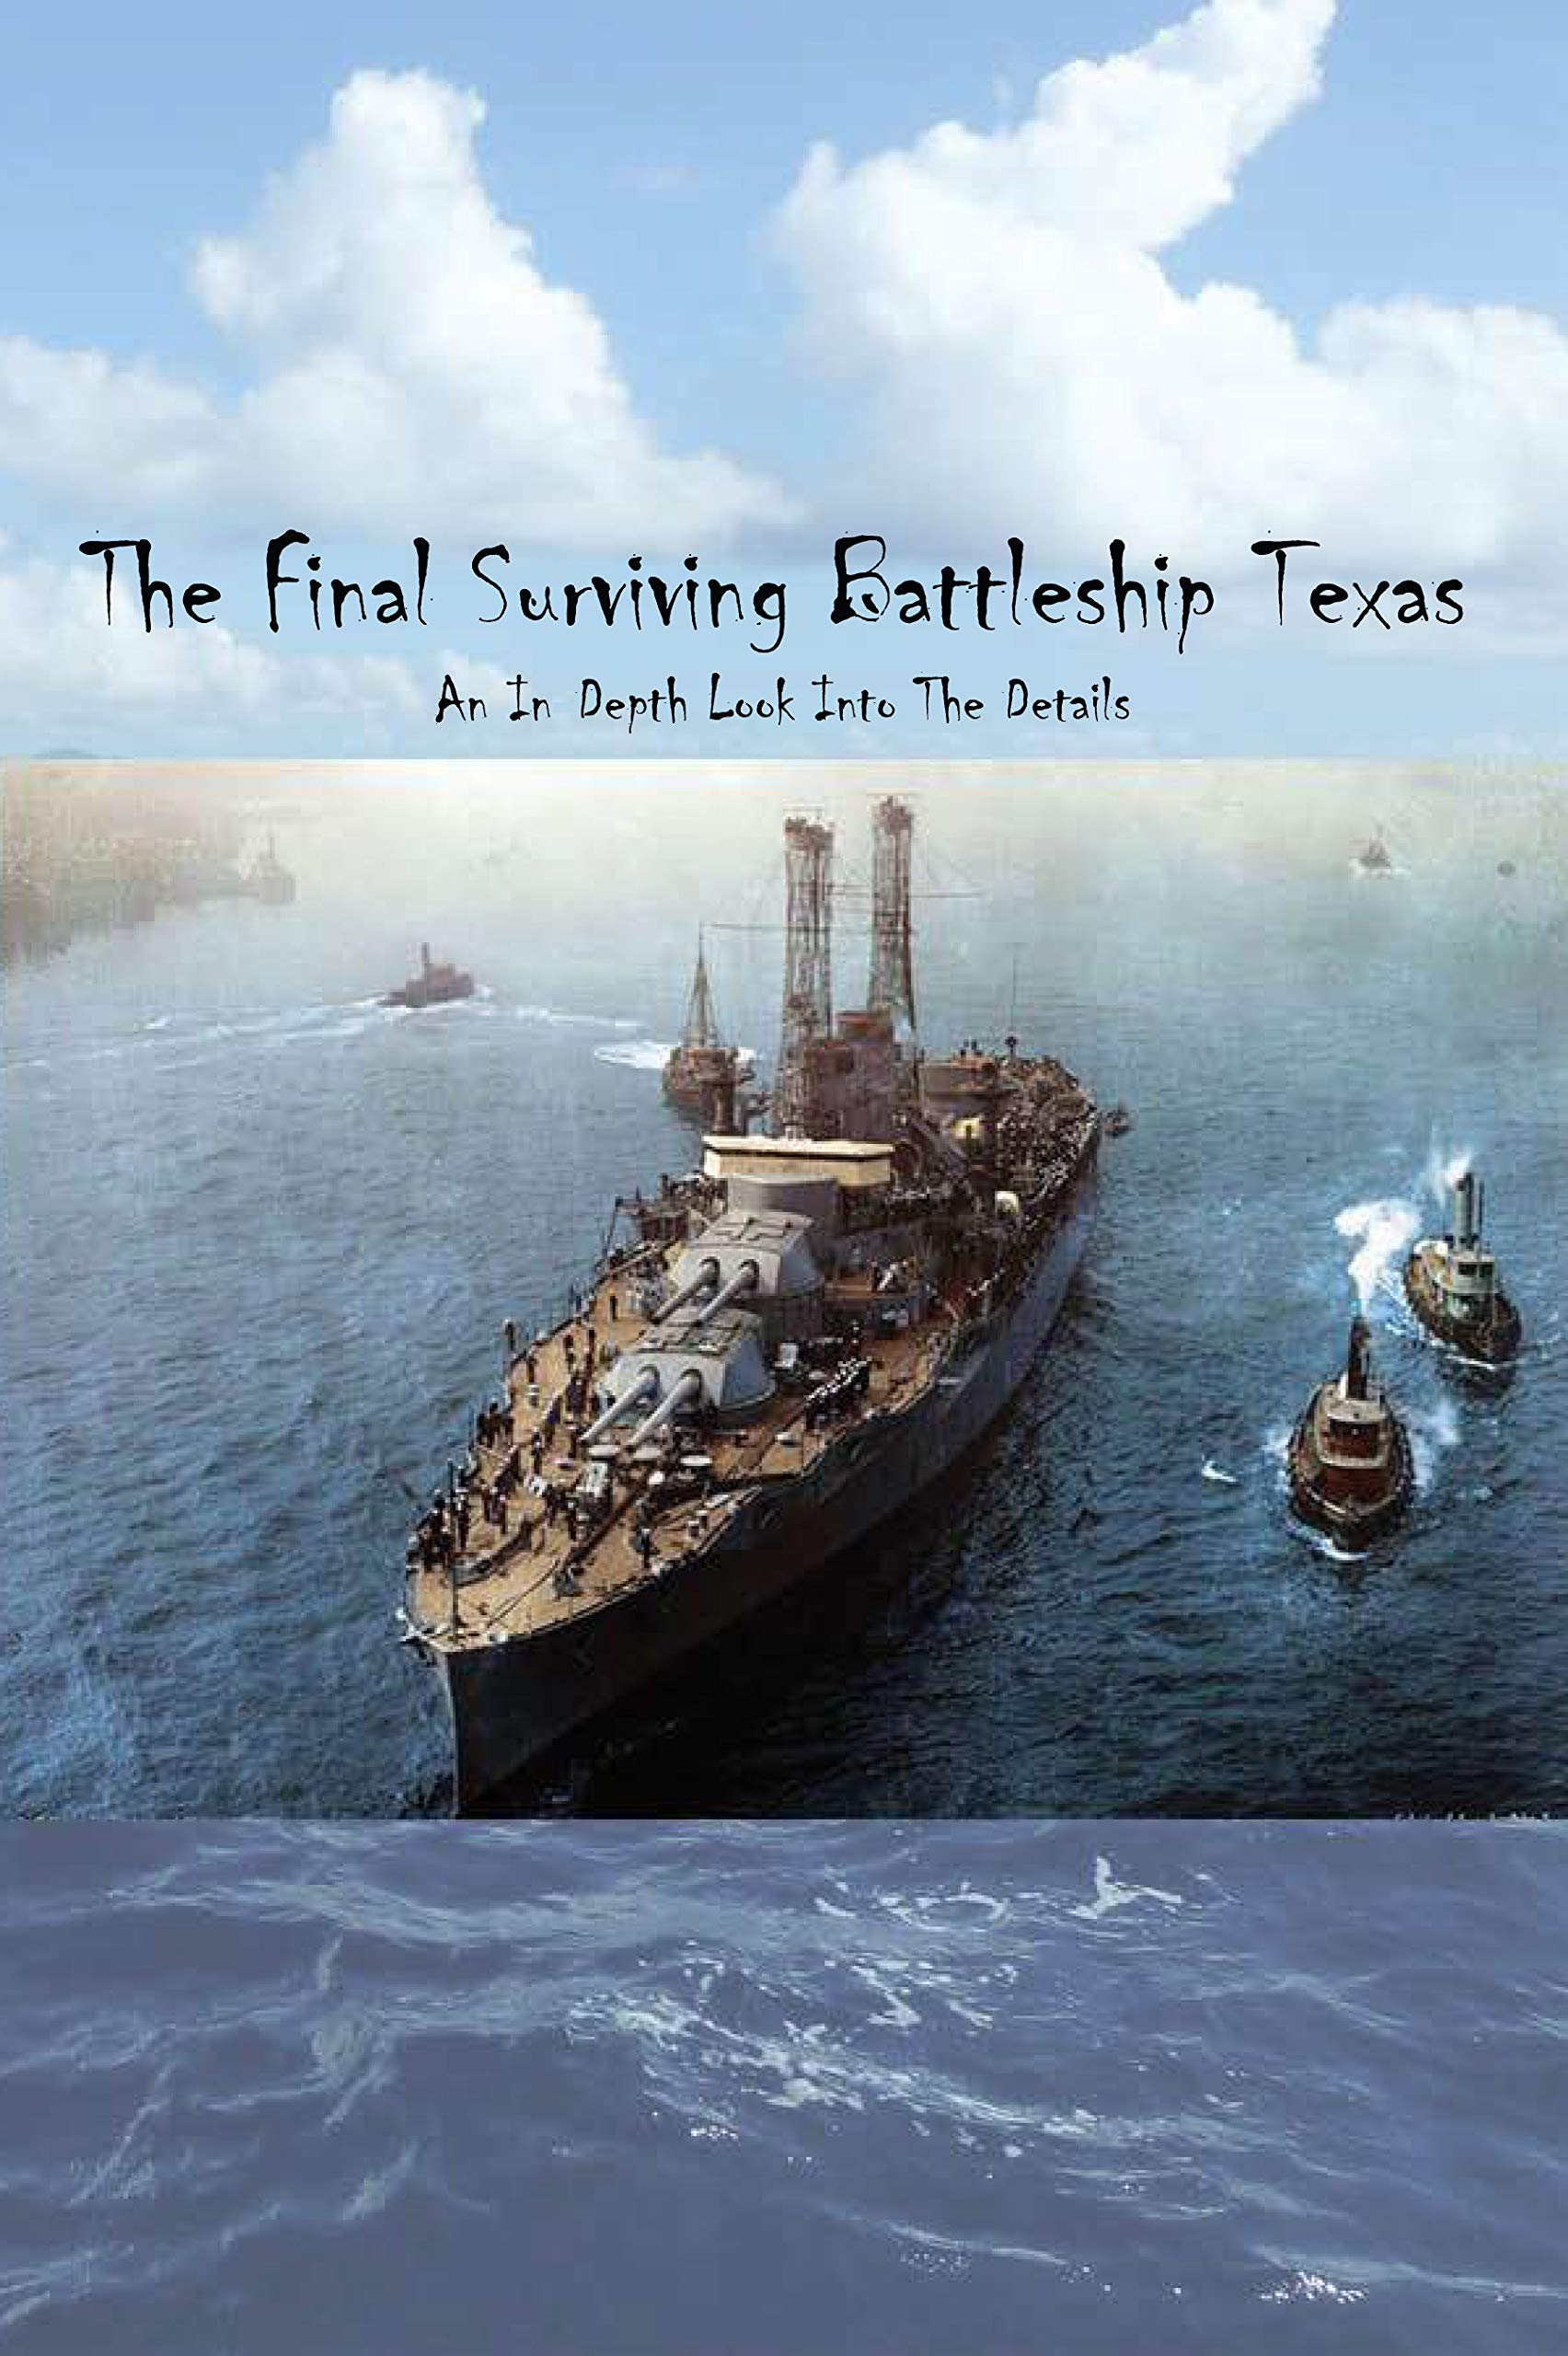 The Final Surviving Battleship Texas: An In-Depth Look Into The Details: Historical Fictions